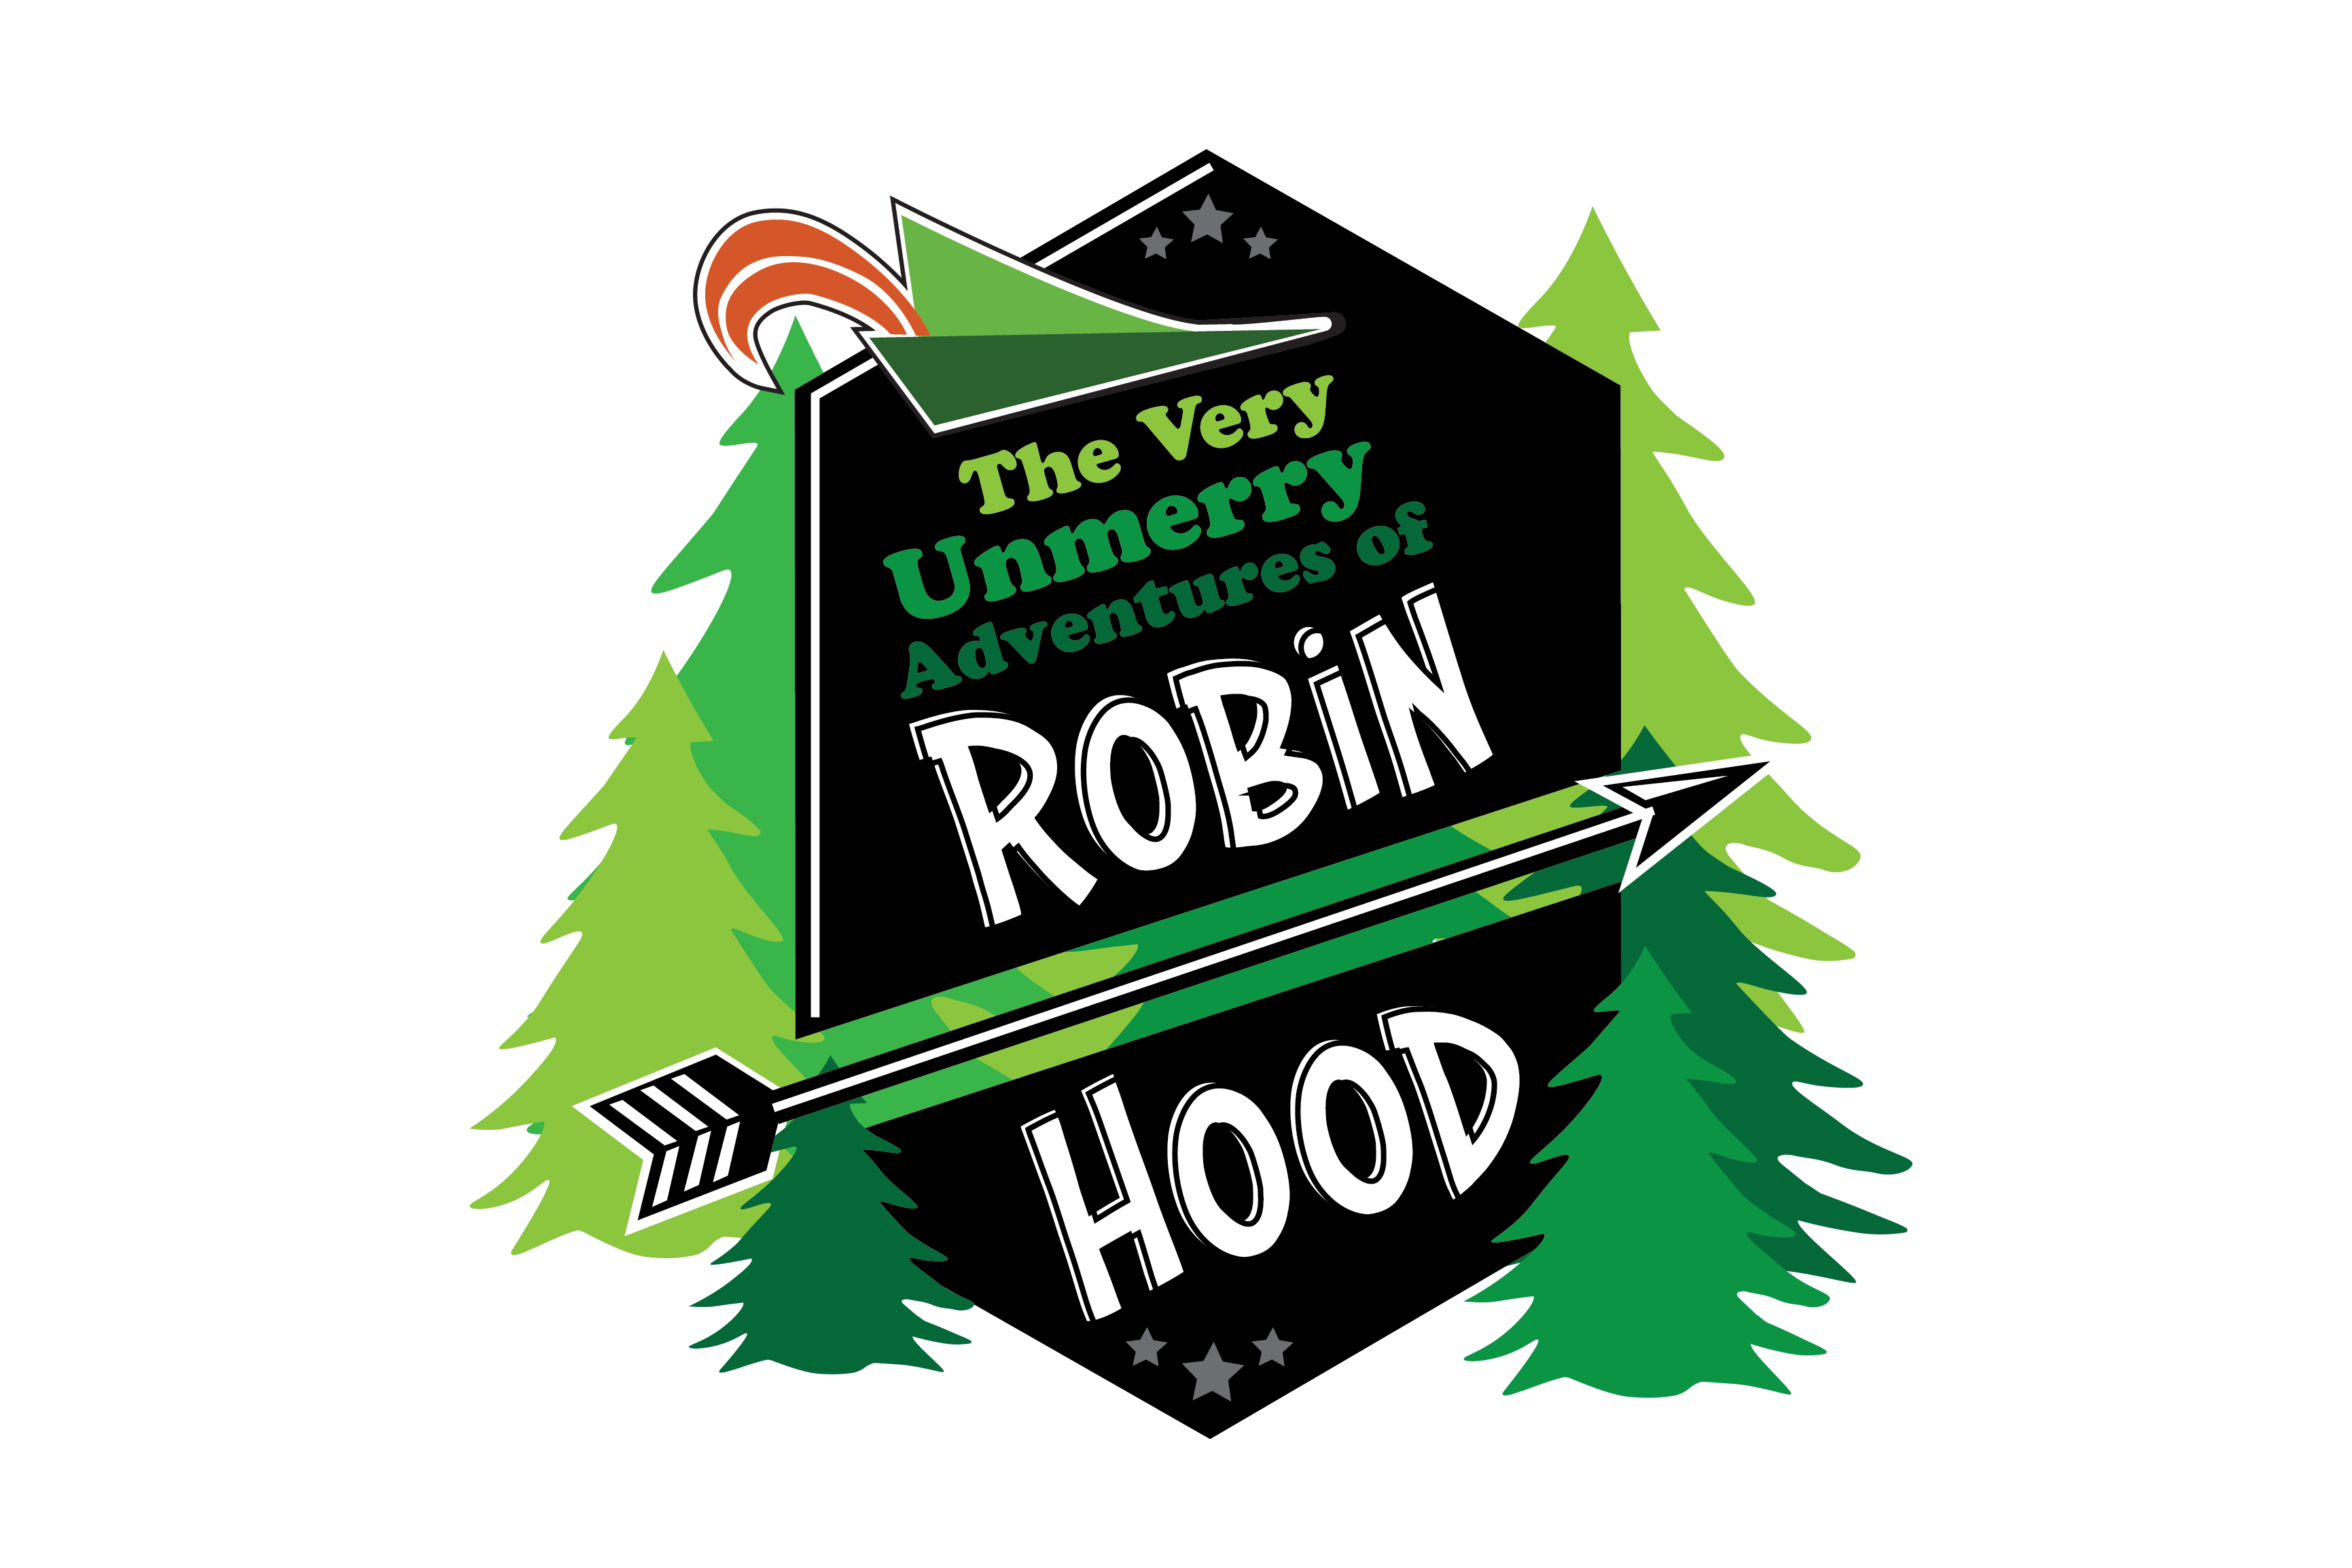 Patrick Greene and Jason Pizzarello's The Very UnMerry Adventures of Robin Hood logo